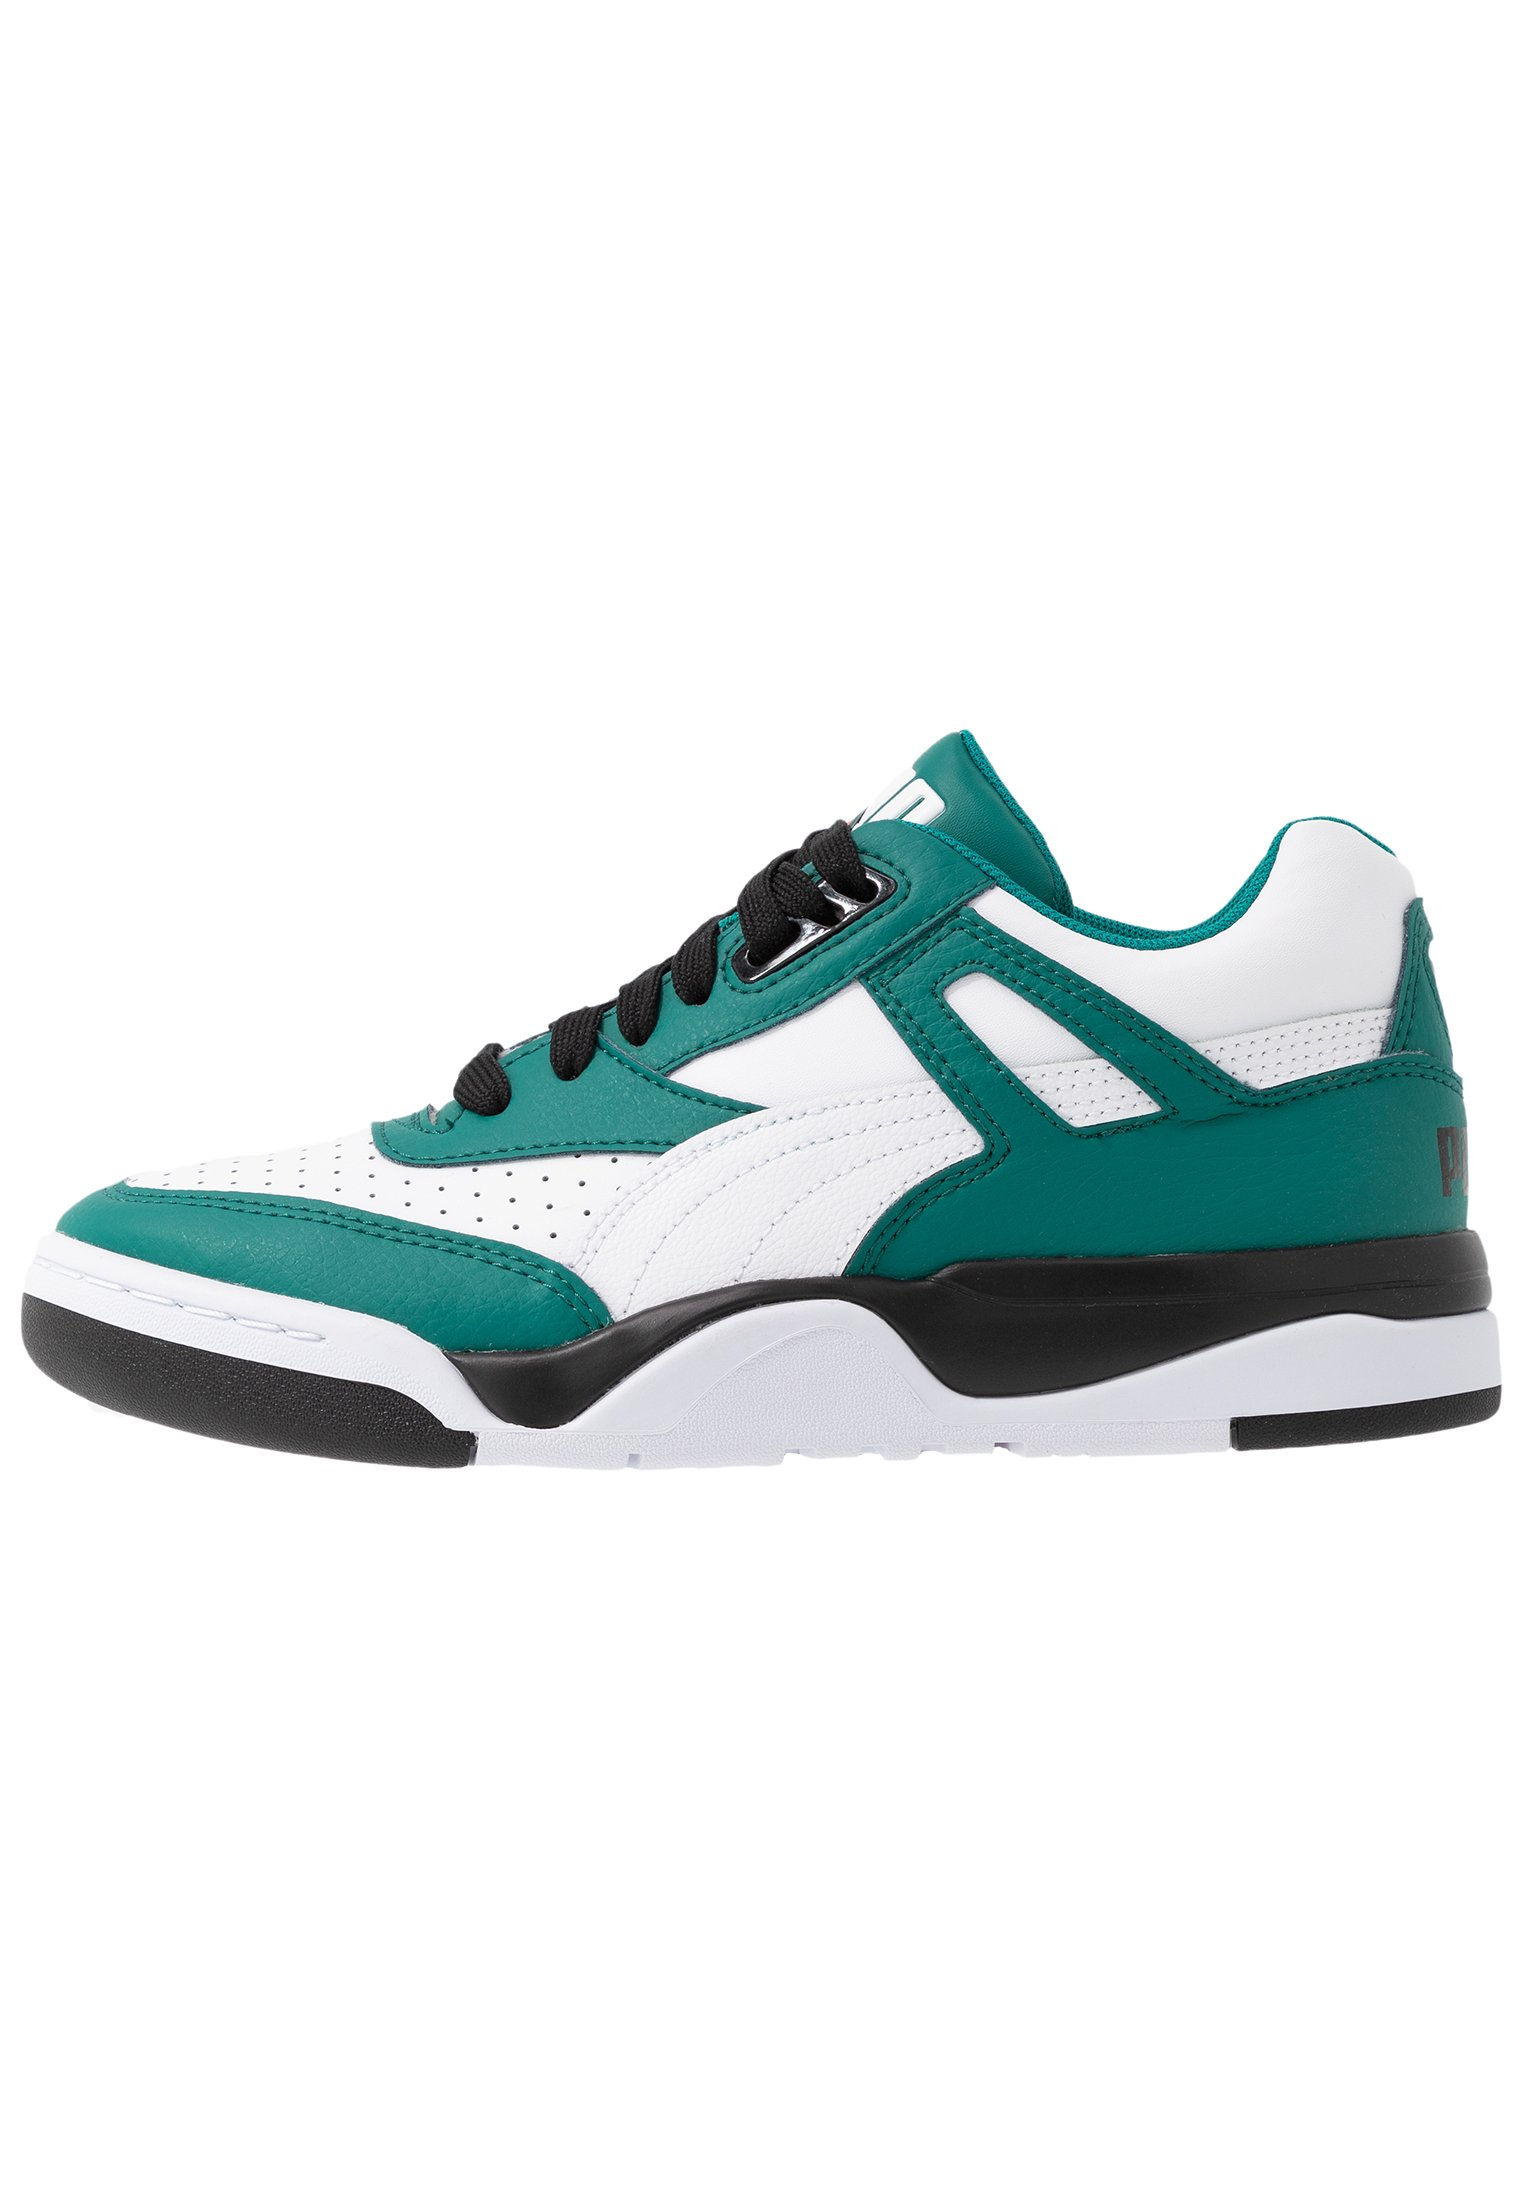 Puma PALACE GUARD BLOCK Sneaker low teal greenwhite